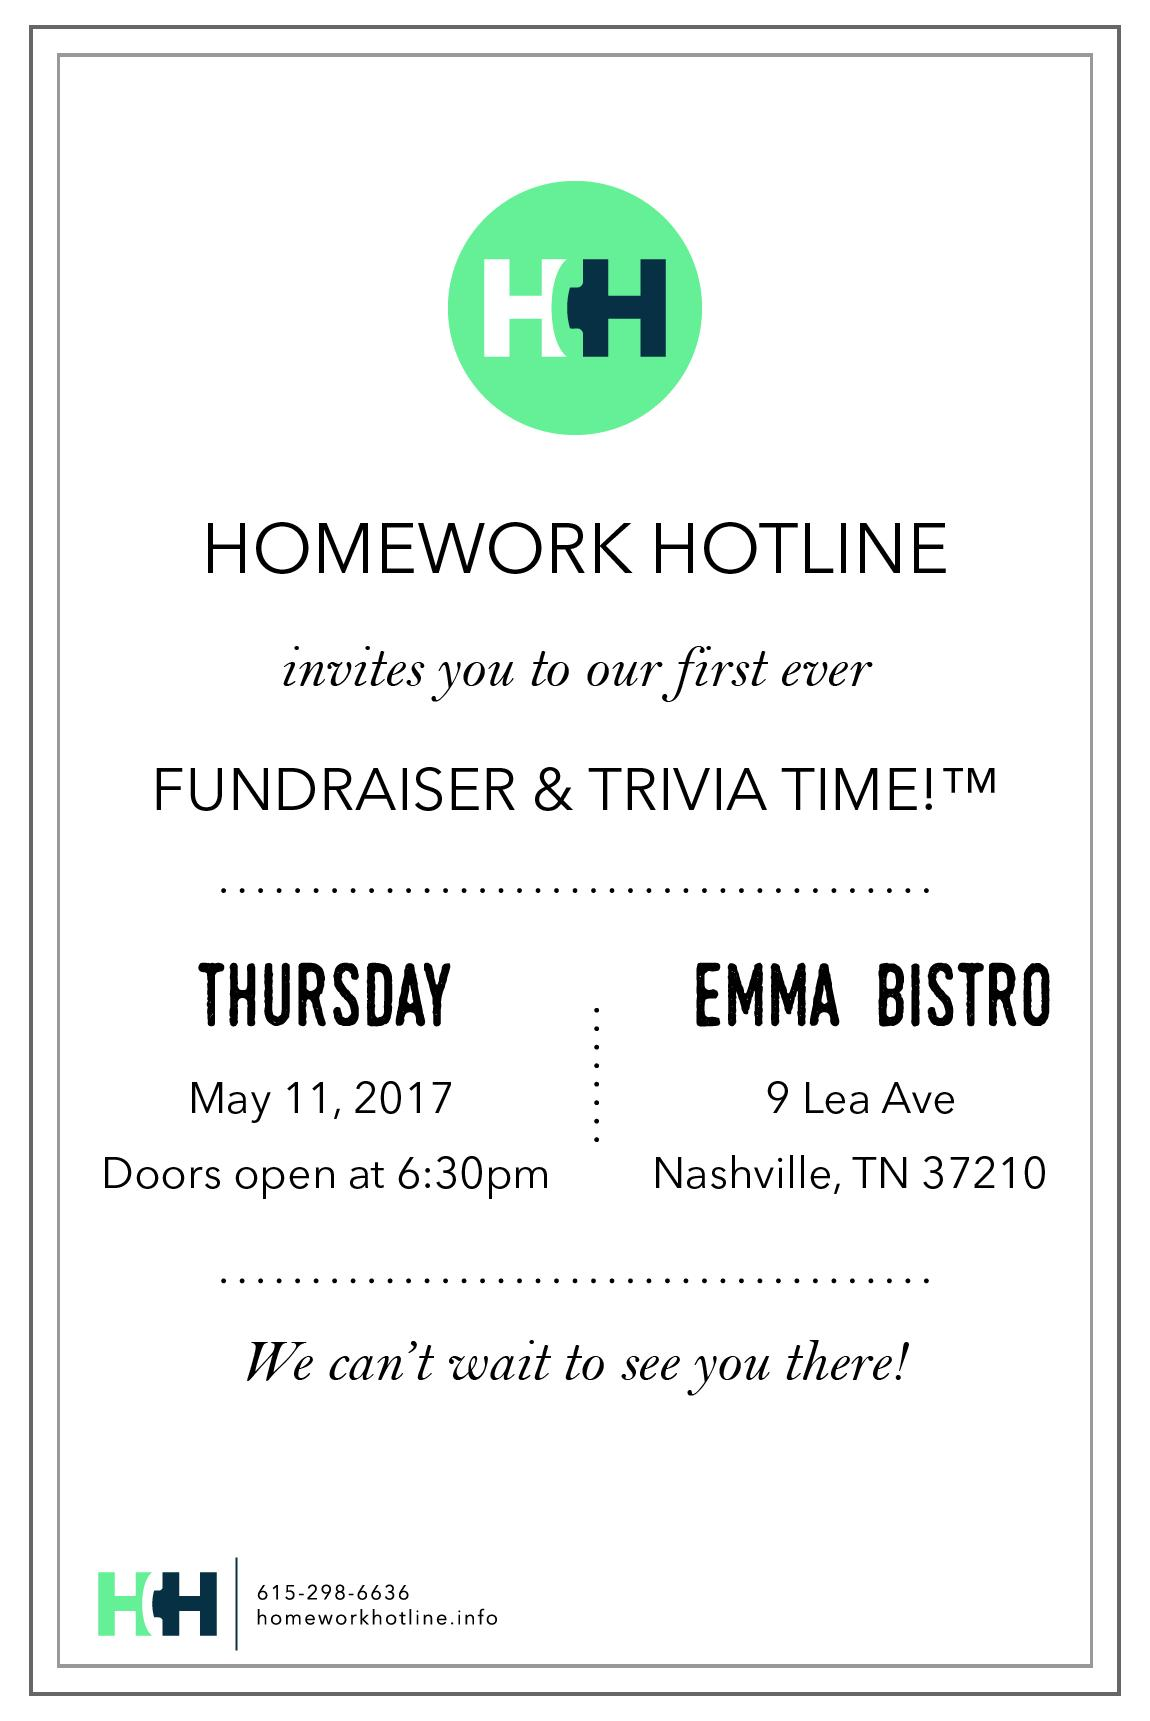 Dms homework hotline